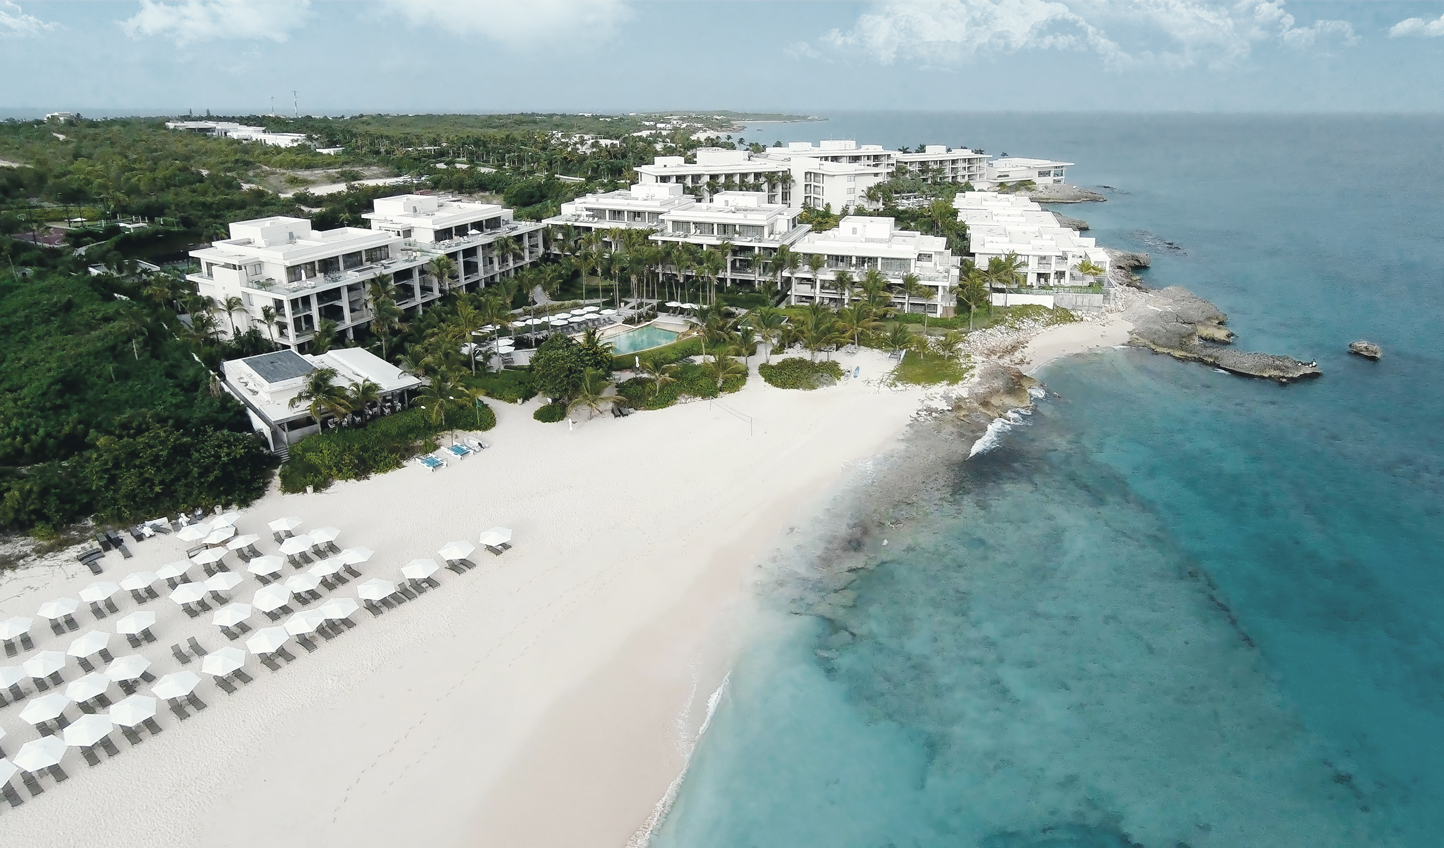 Enjoy the stunning white coastline of Four Seasons Resort Anguilla